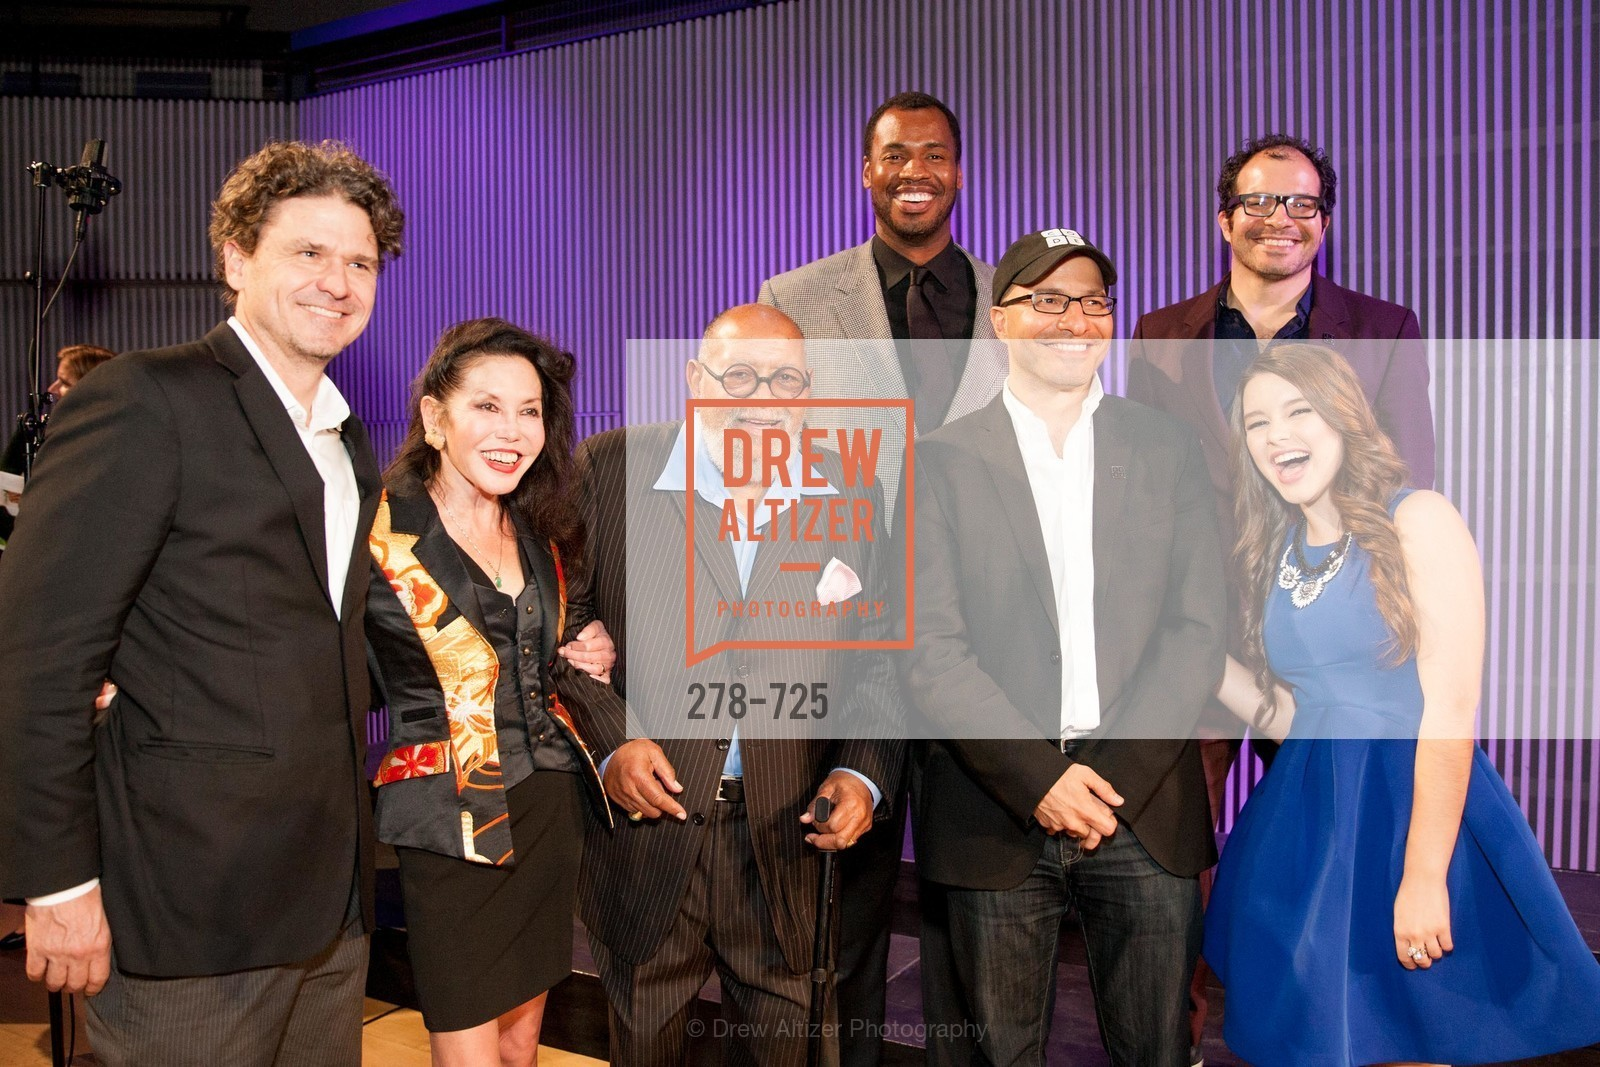 Dave Eggers, Janice Mirikitani, Reverend Cecil Williams, Jason Collins, Hadi Partovi, Ali Partovi, COMMON SENSE Media Awards 2015, US, May 13th, 2015,Drew Altizer, Drew Altizer Photography, full-service agency, private events, San Francisco photographer, photographer california